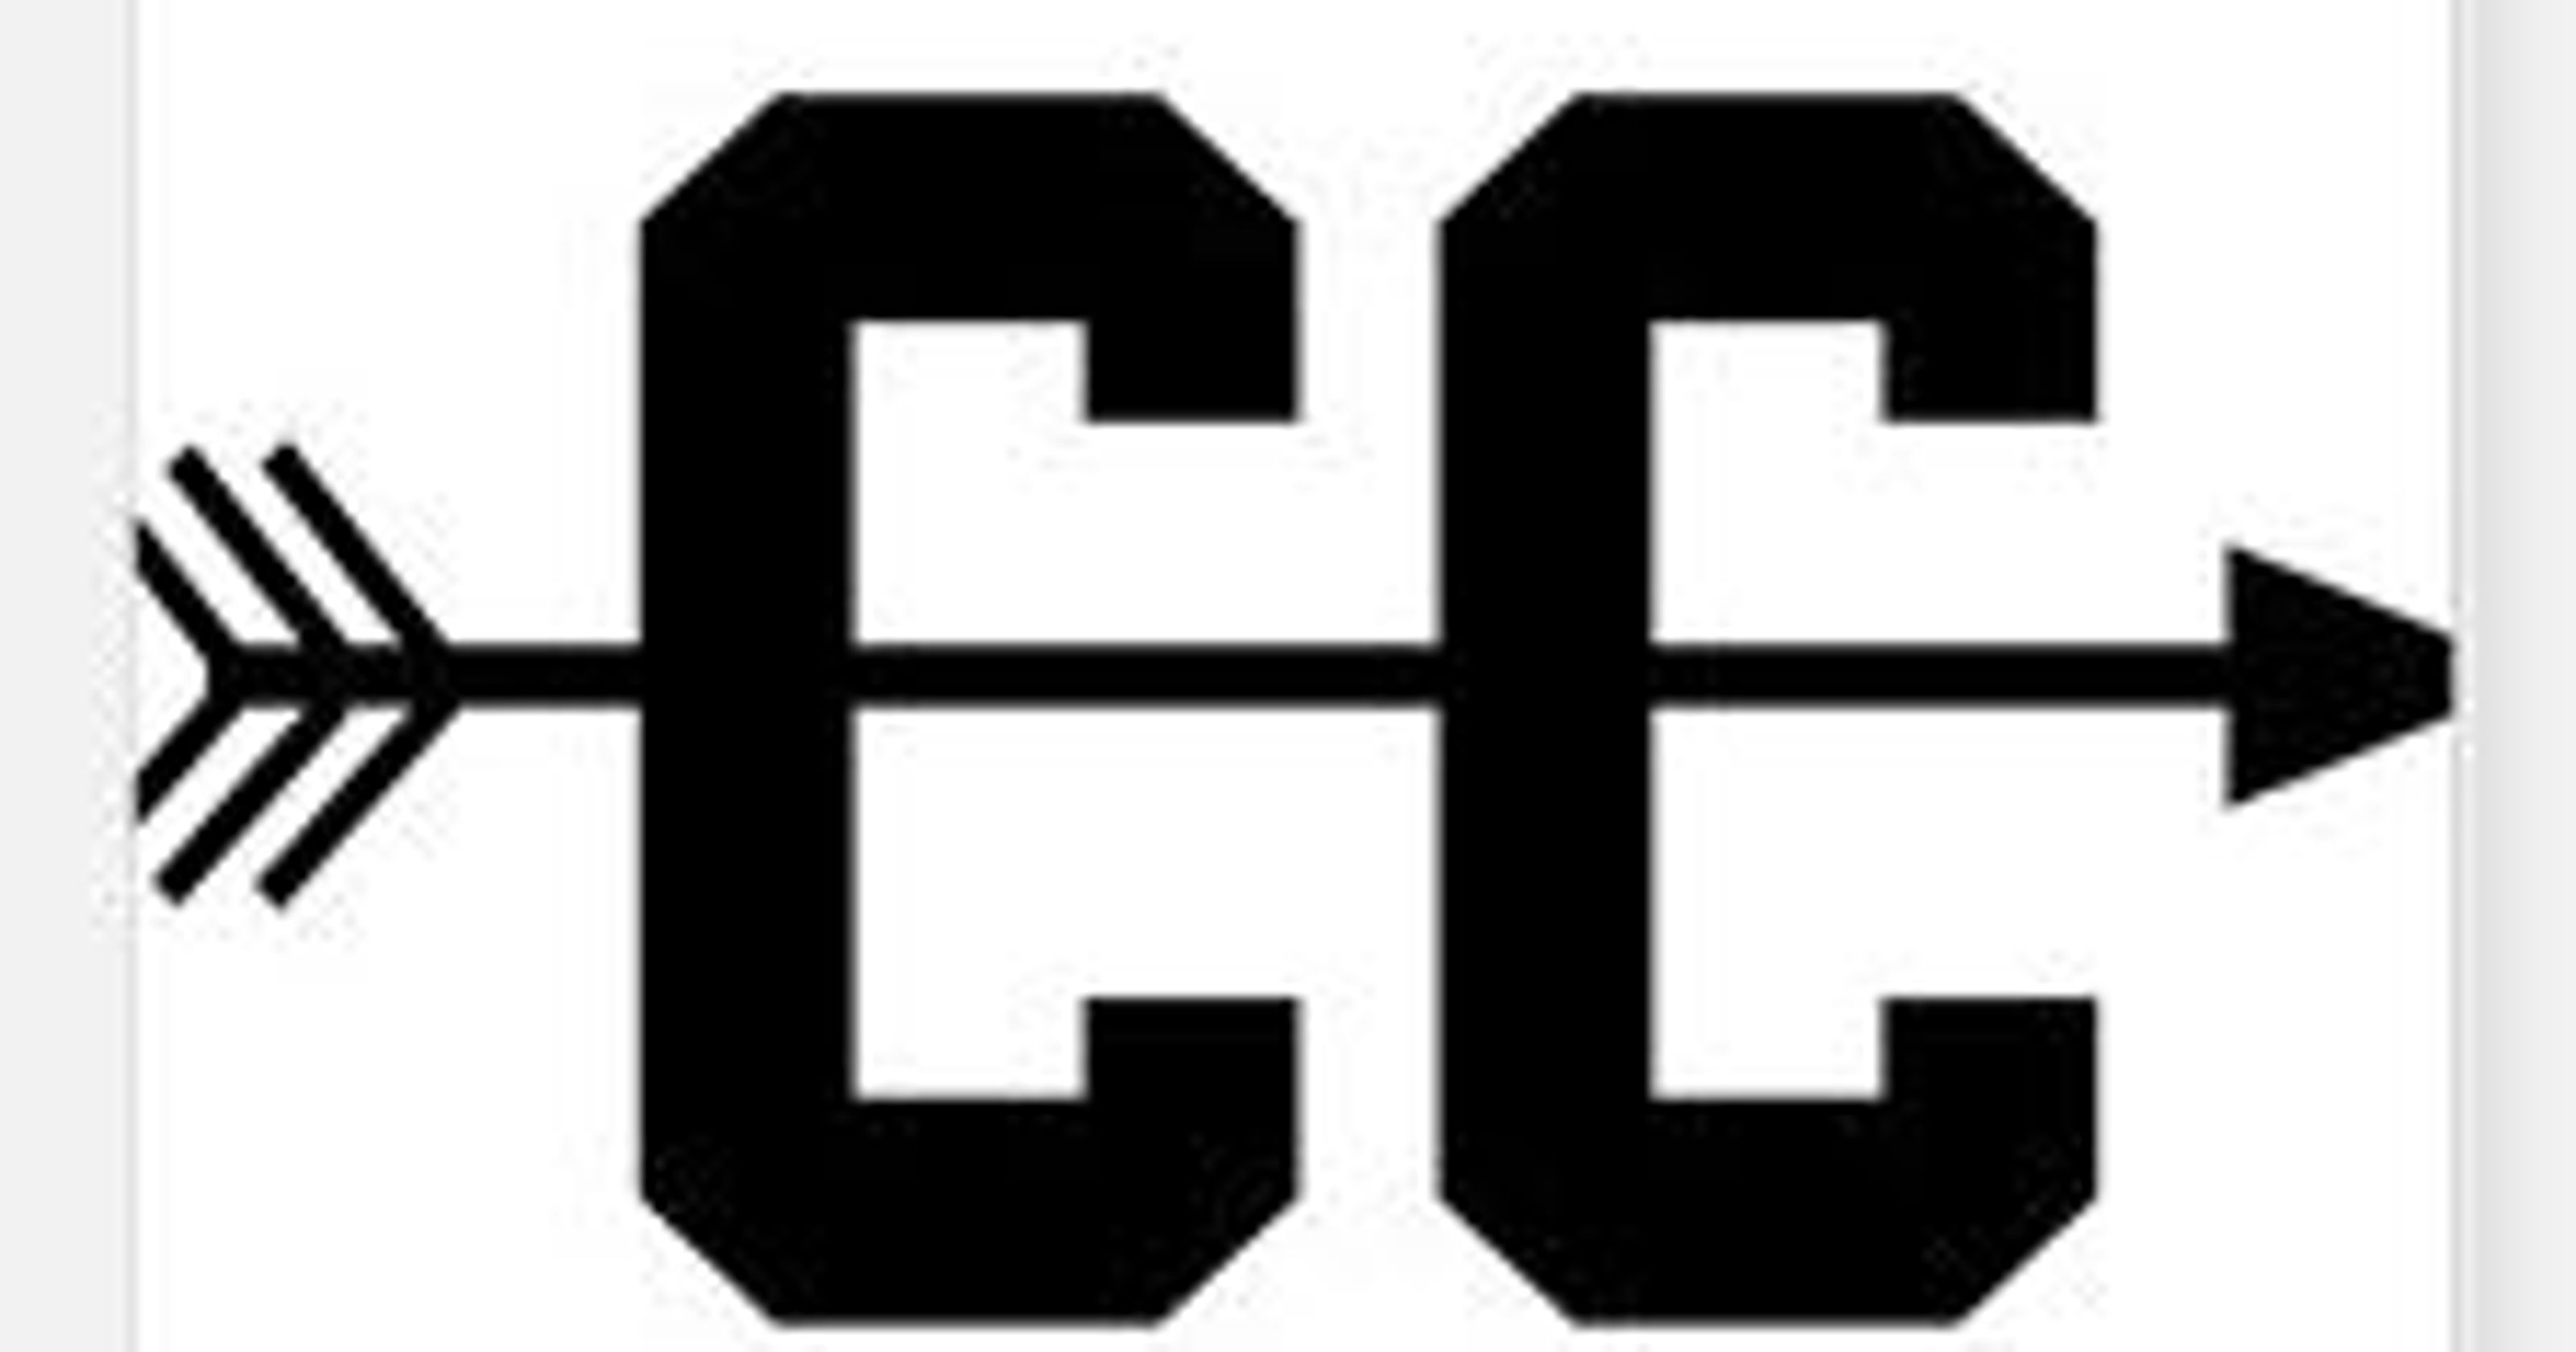 Cross Country Logo Free Download Clip Art.